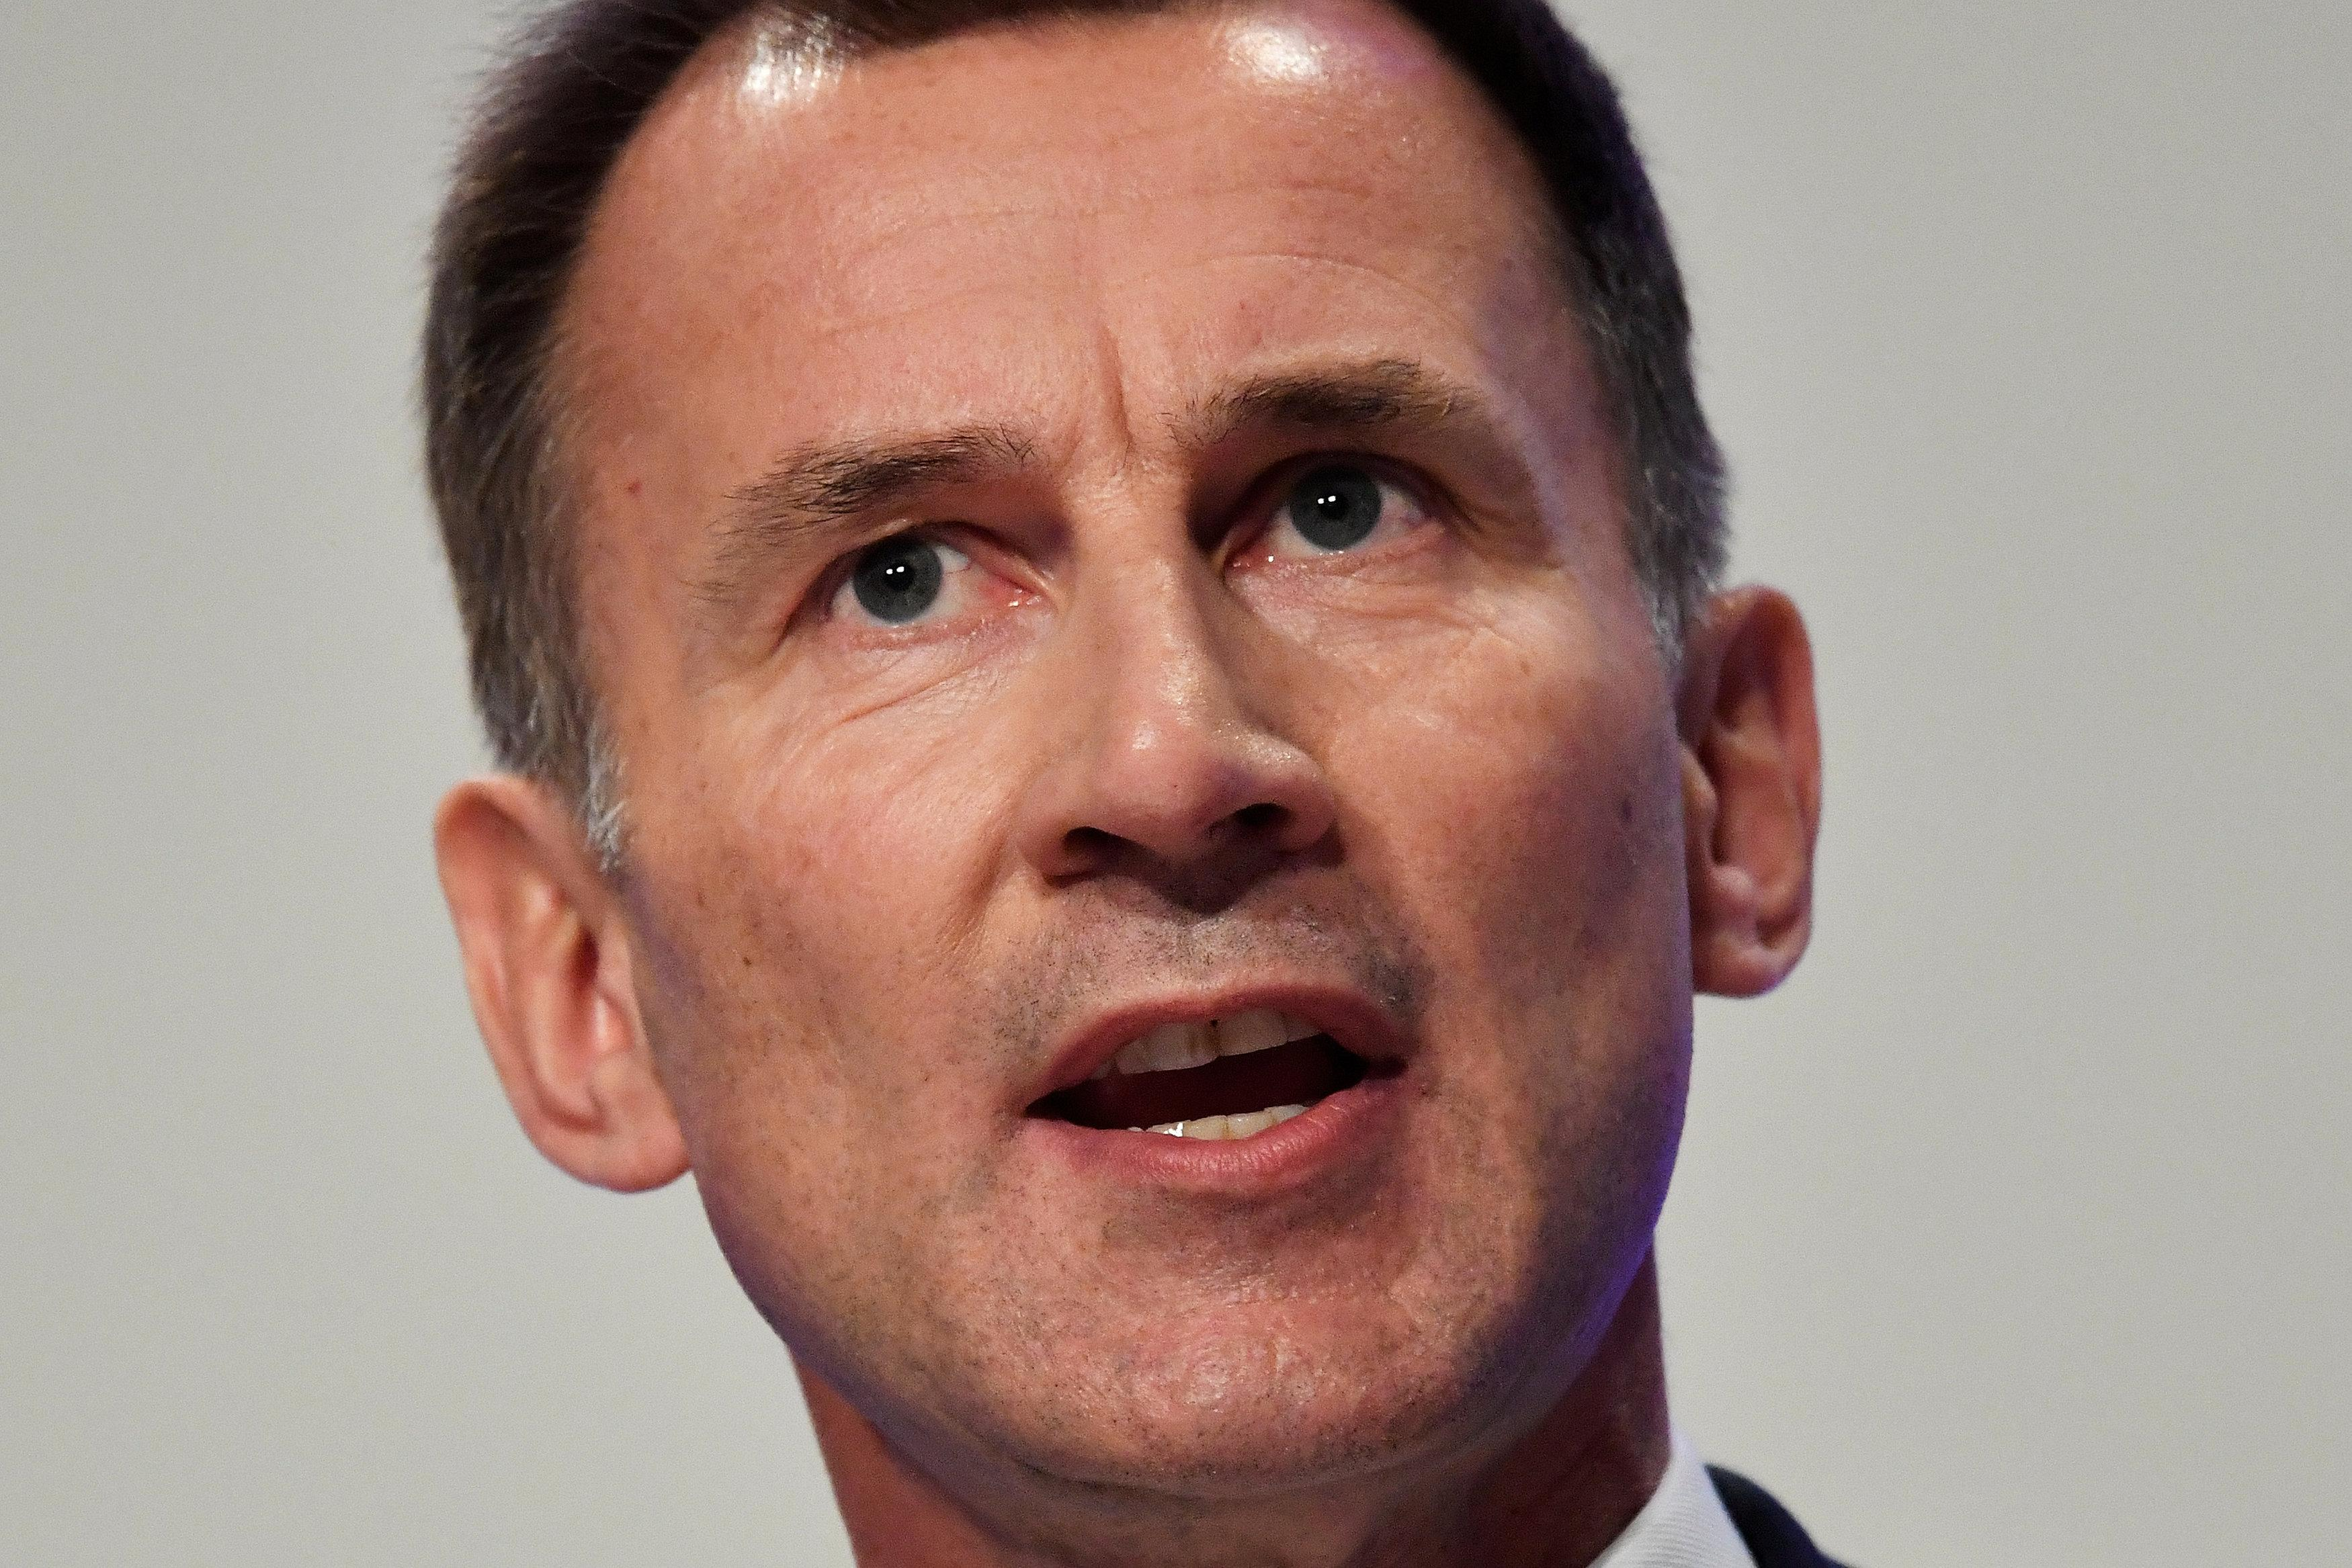 Britain's Foreign Secretary Jeremy Hunt addresses the Conservative Party Conference in Birmingham, Britain September 30, 2018. Toby Melville